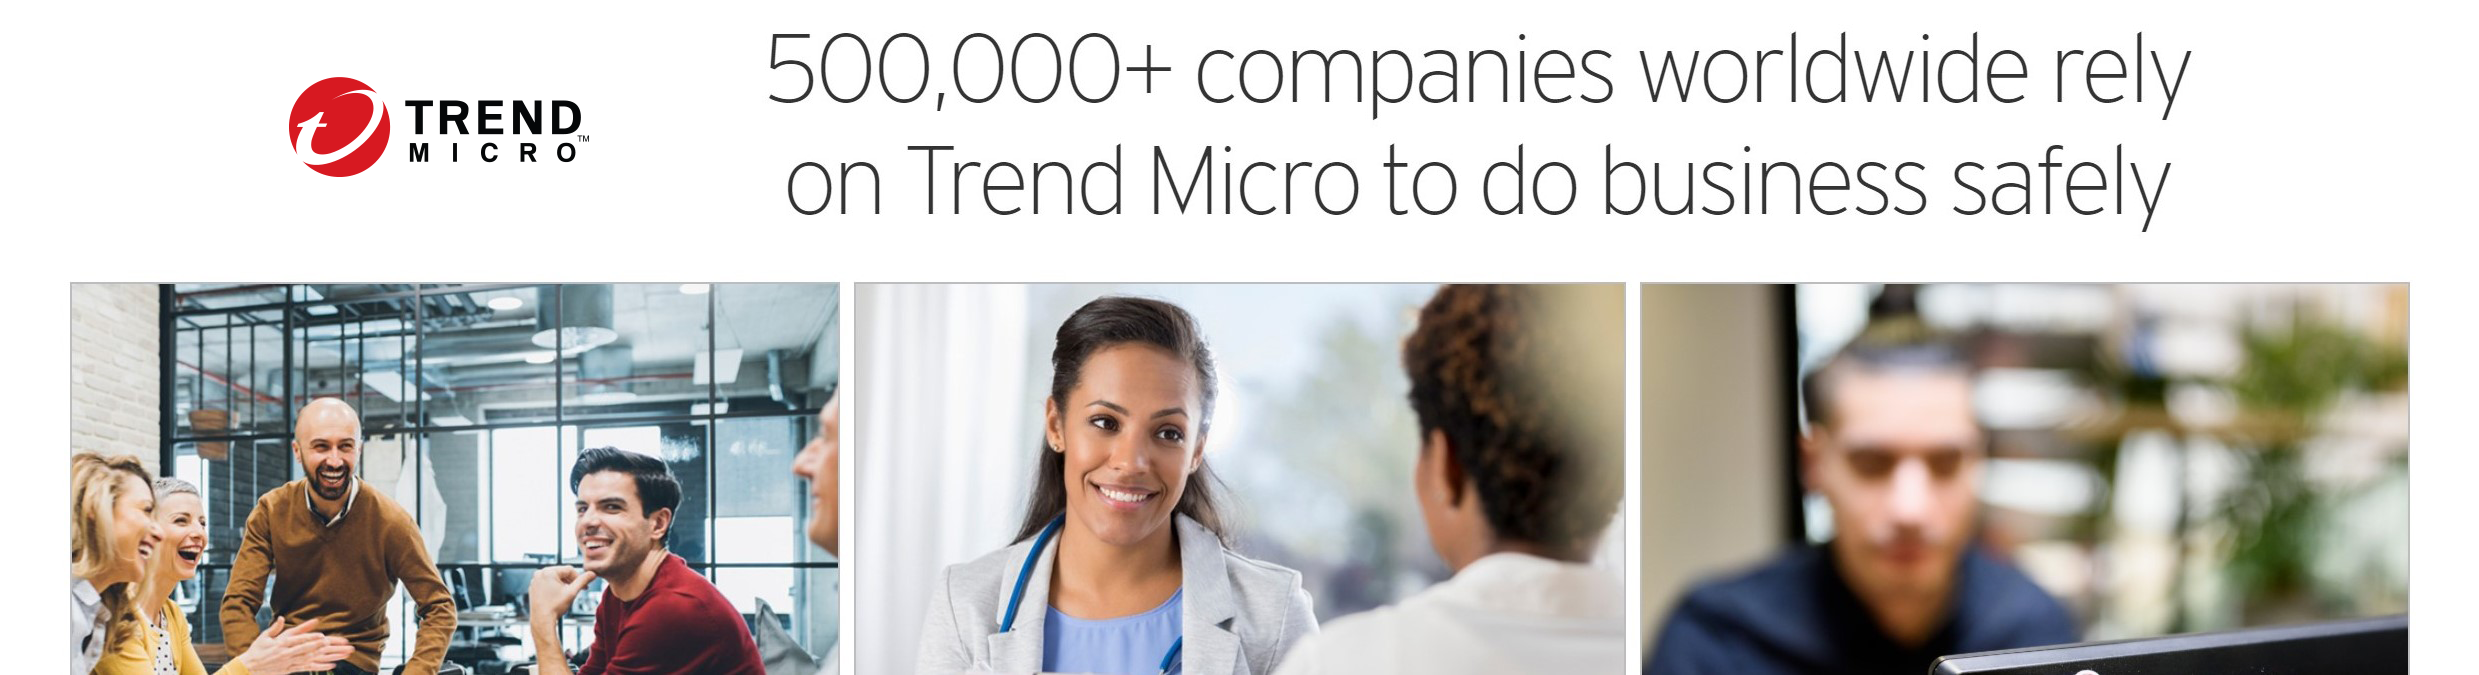 Trend Micro cybersecurity